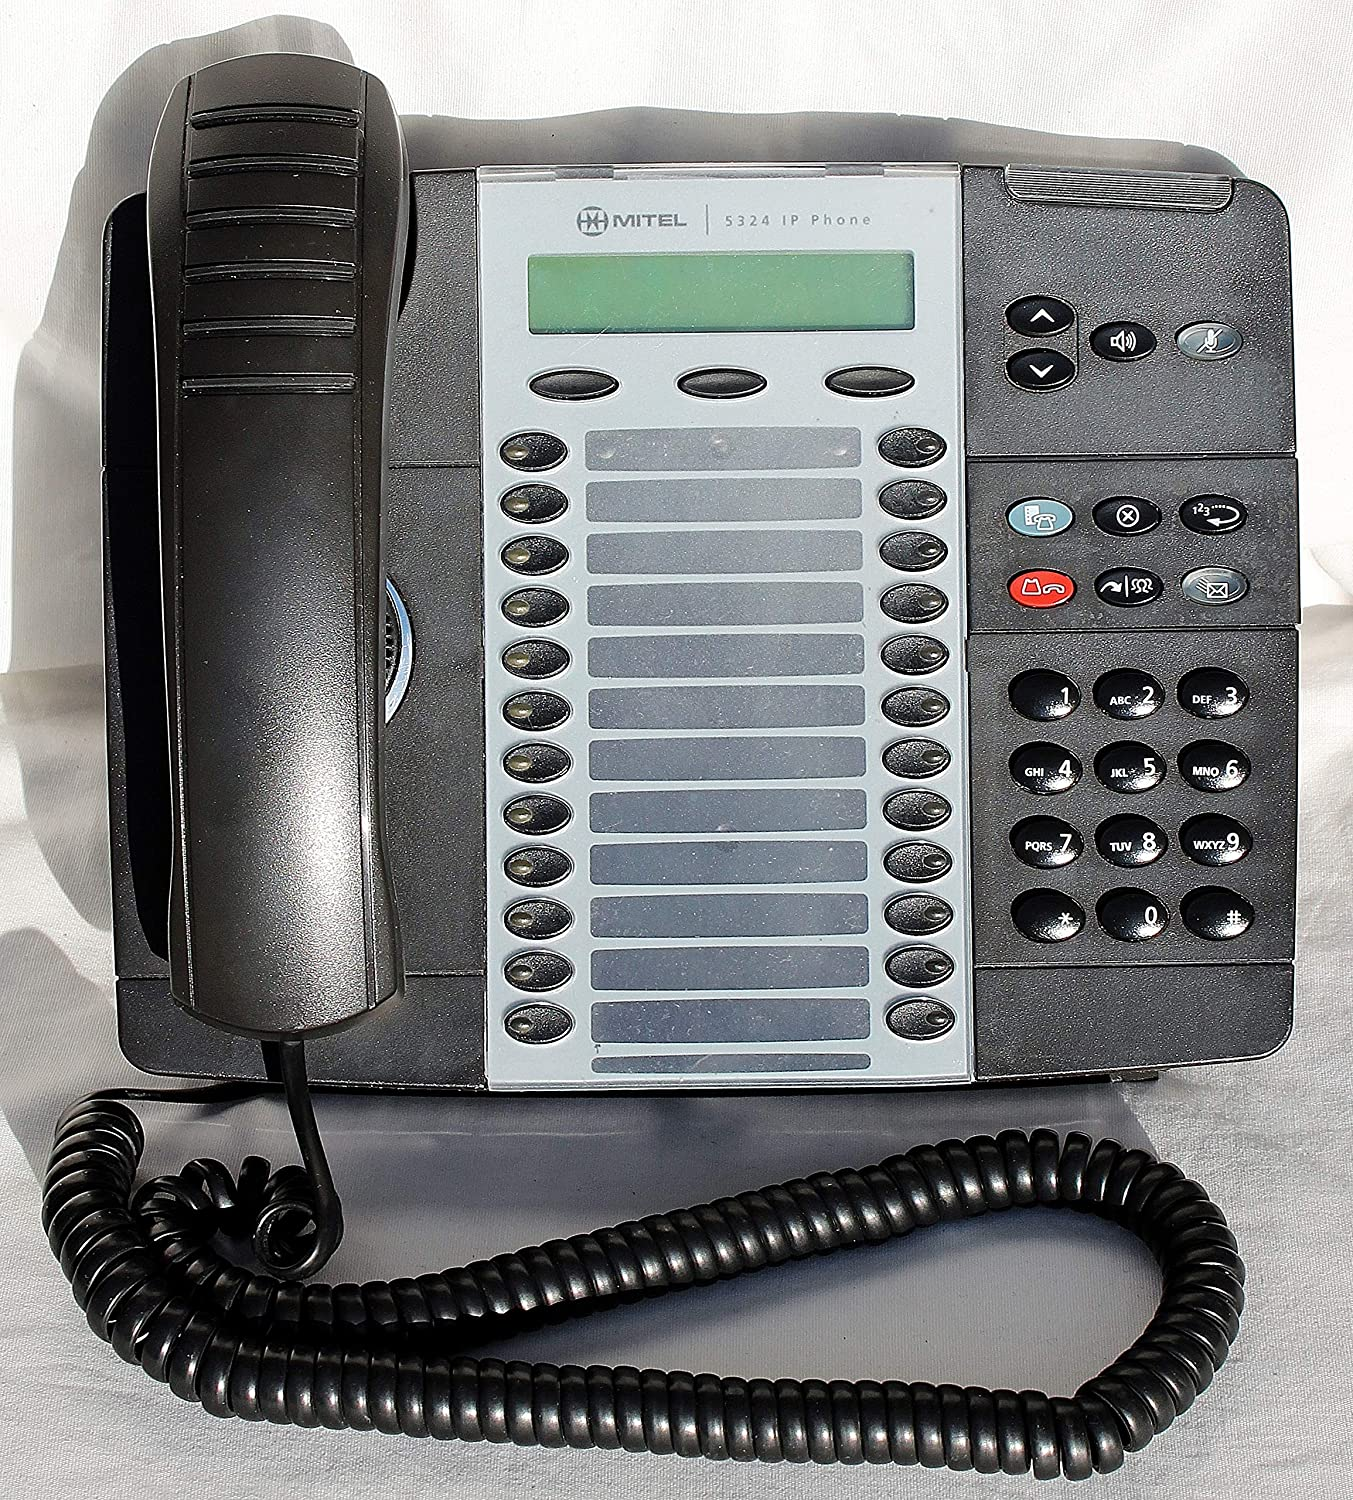 Renewed Mitel 5324 IP System Telephone